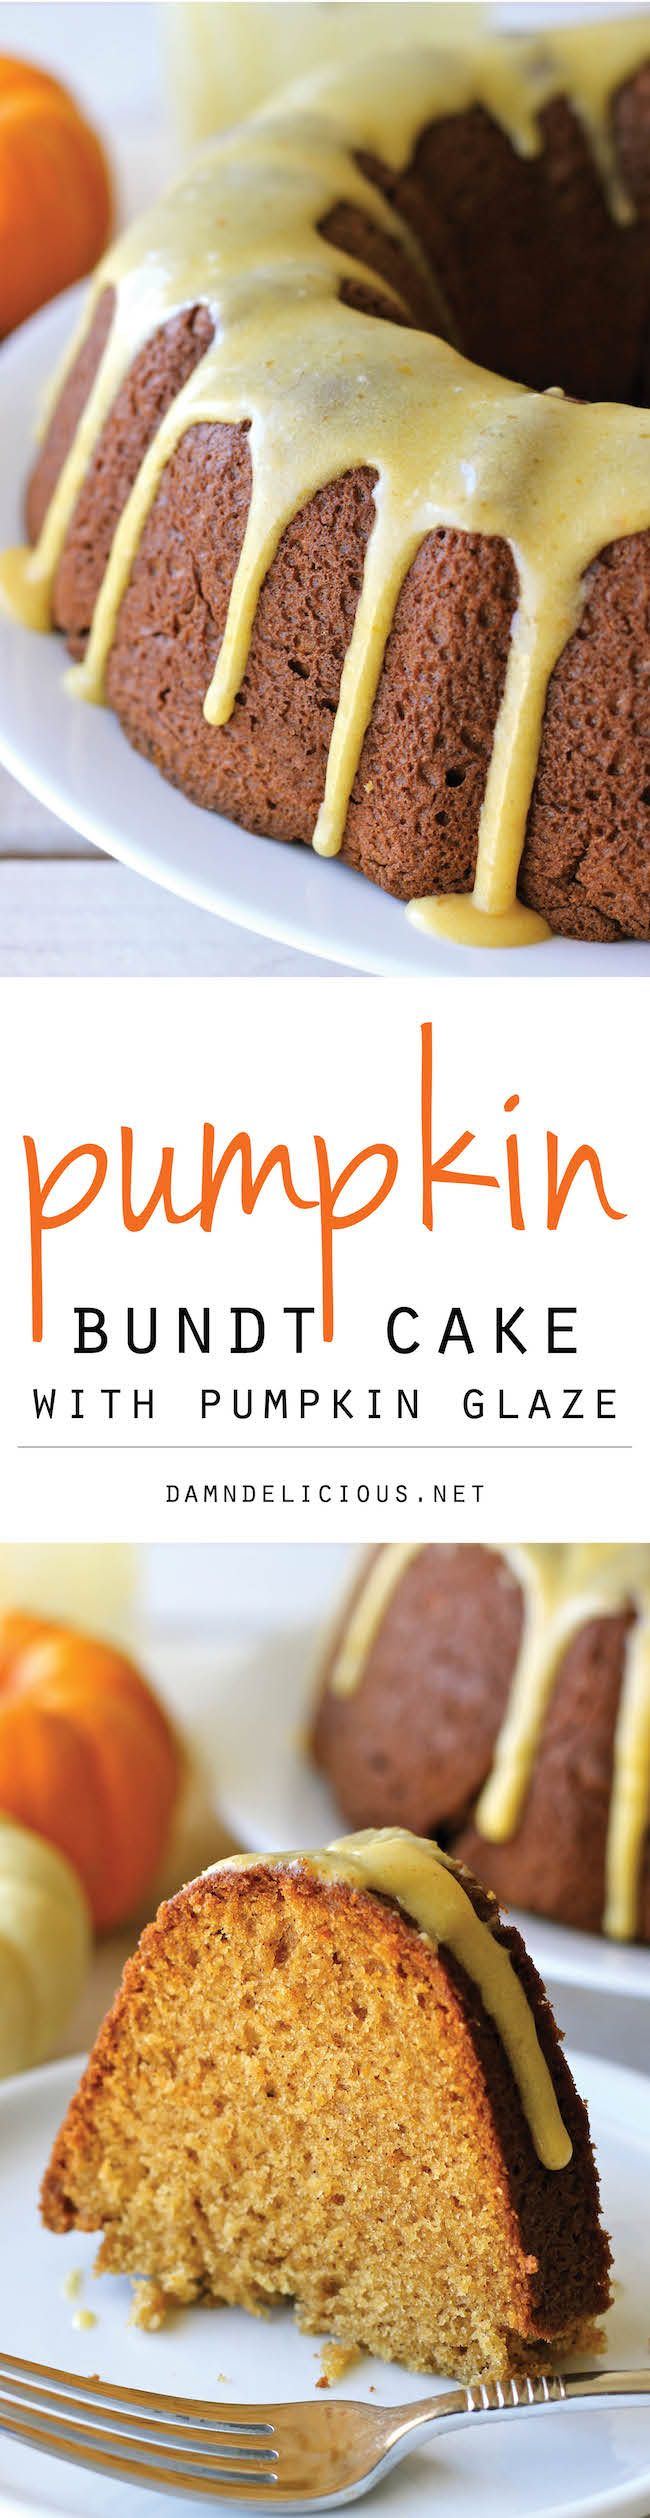 Pumpkin Bundt Cake with Pumpkin Glaze - A perfect fall cake that is sure to be a crowd pleaser! It's so good, you'll want to make it all year long!